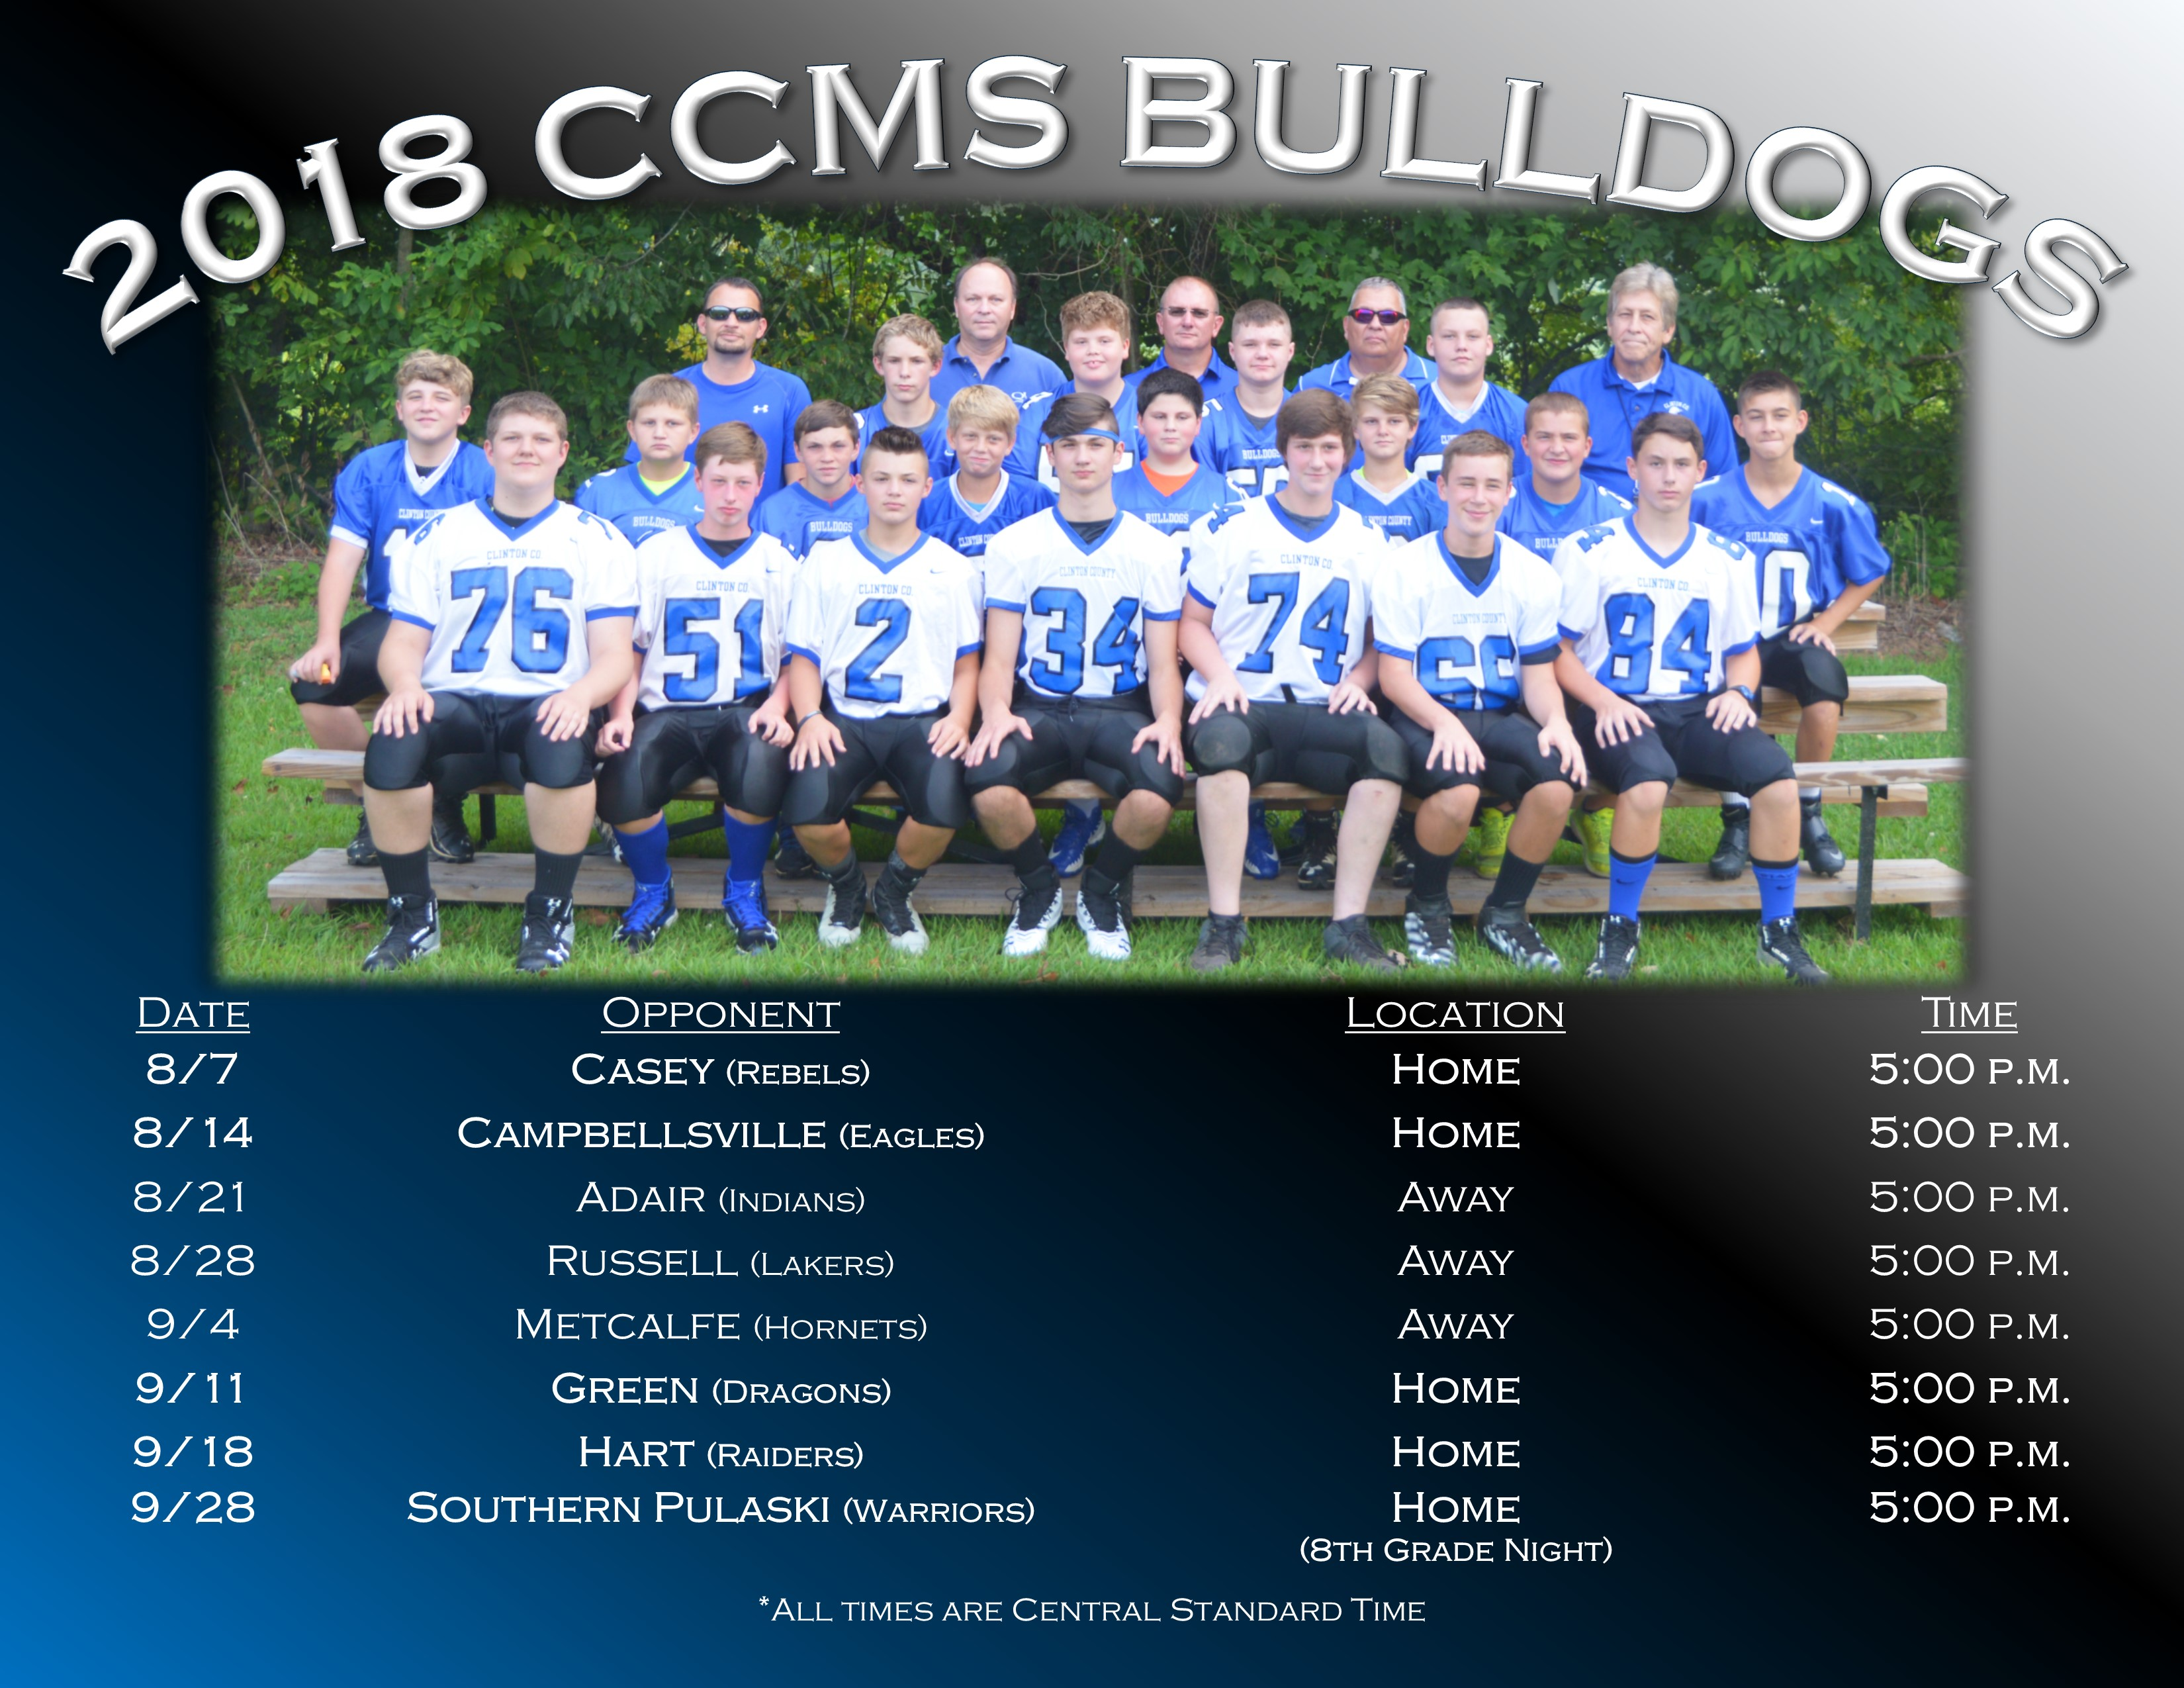 2018 CCMS Football Schedule